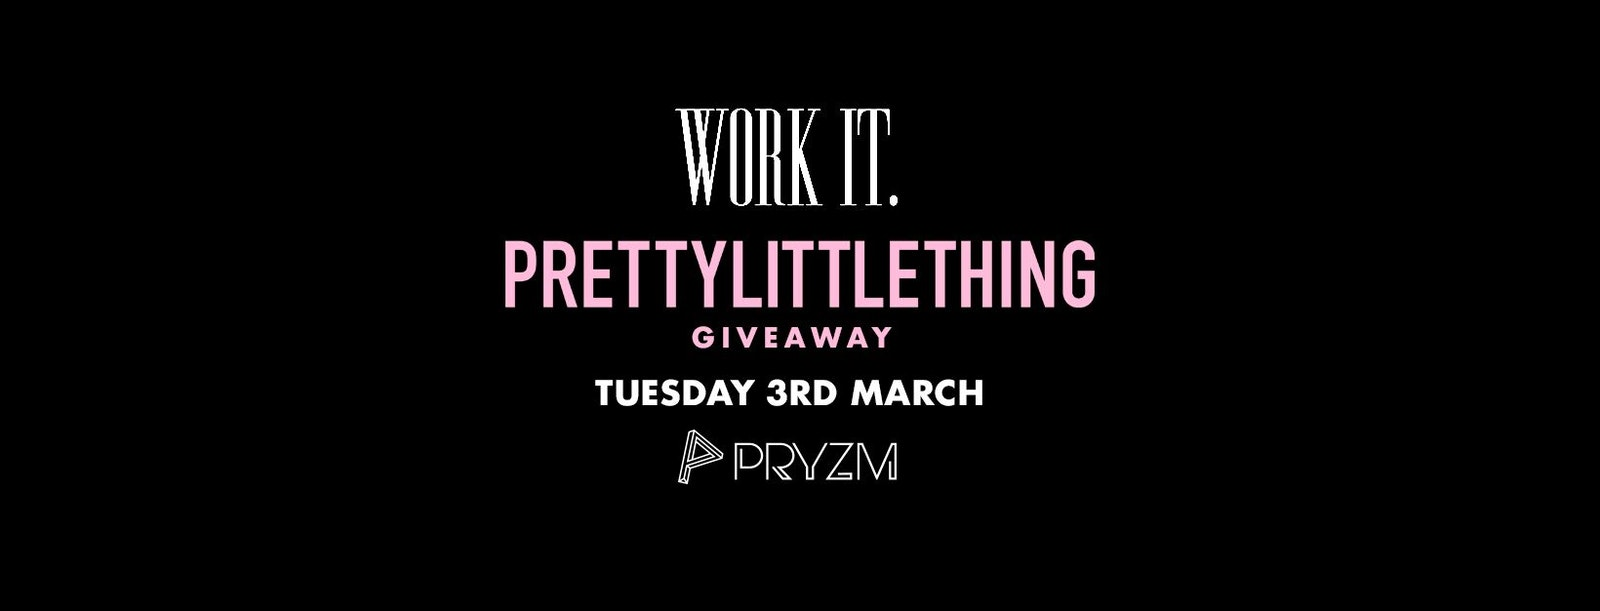 Work It. x Pretty Little Thing Giveaway – PRYZM